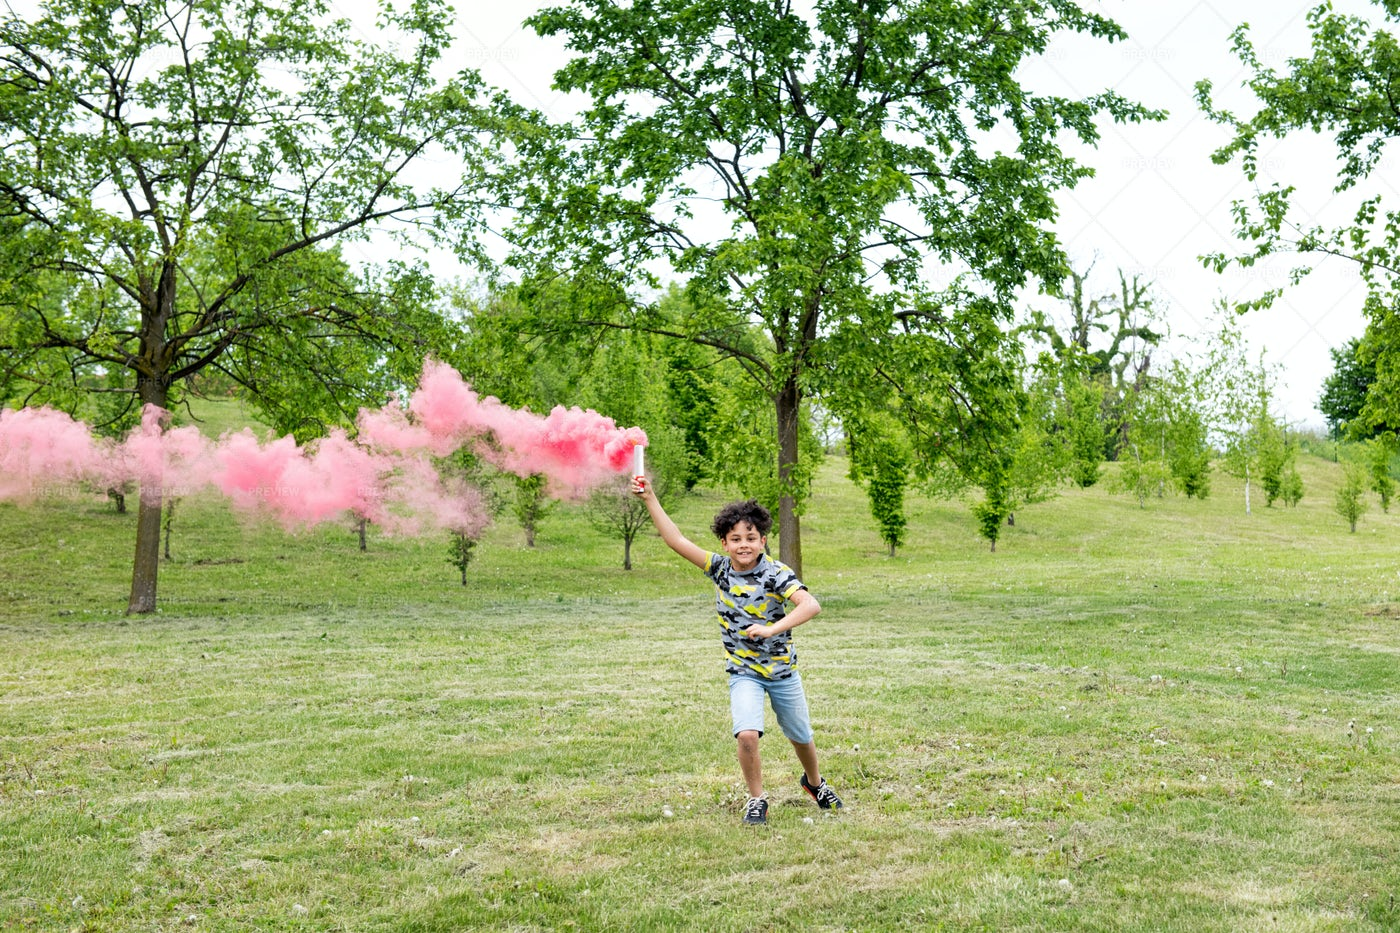 Boy Running With A Flare: Stock Photos